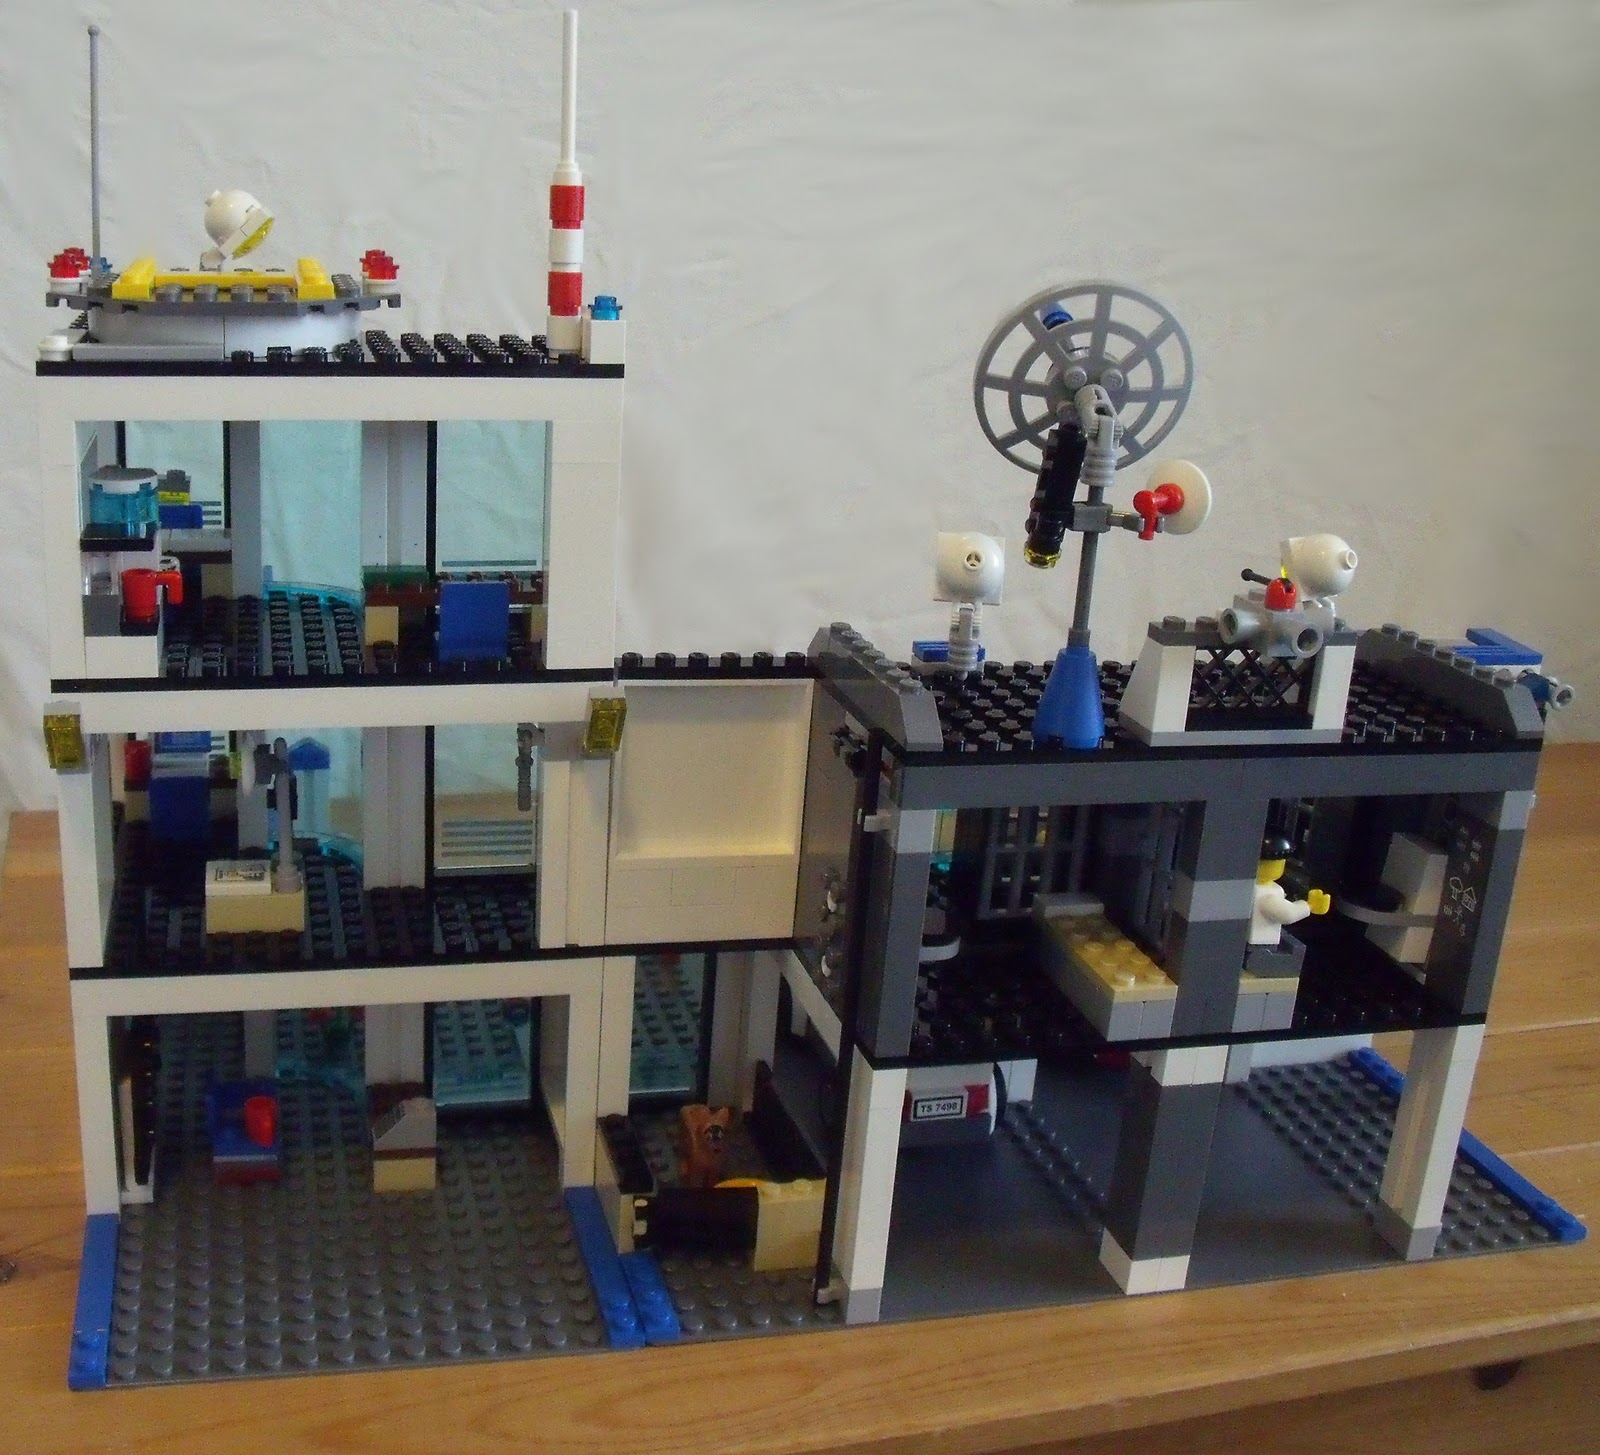 Lego City Police Station Building Instructions